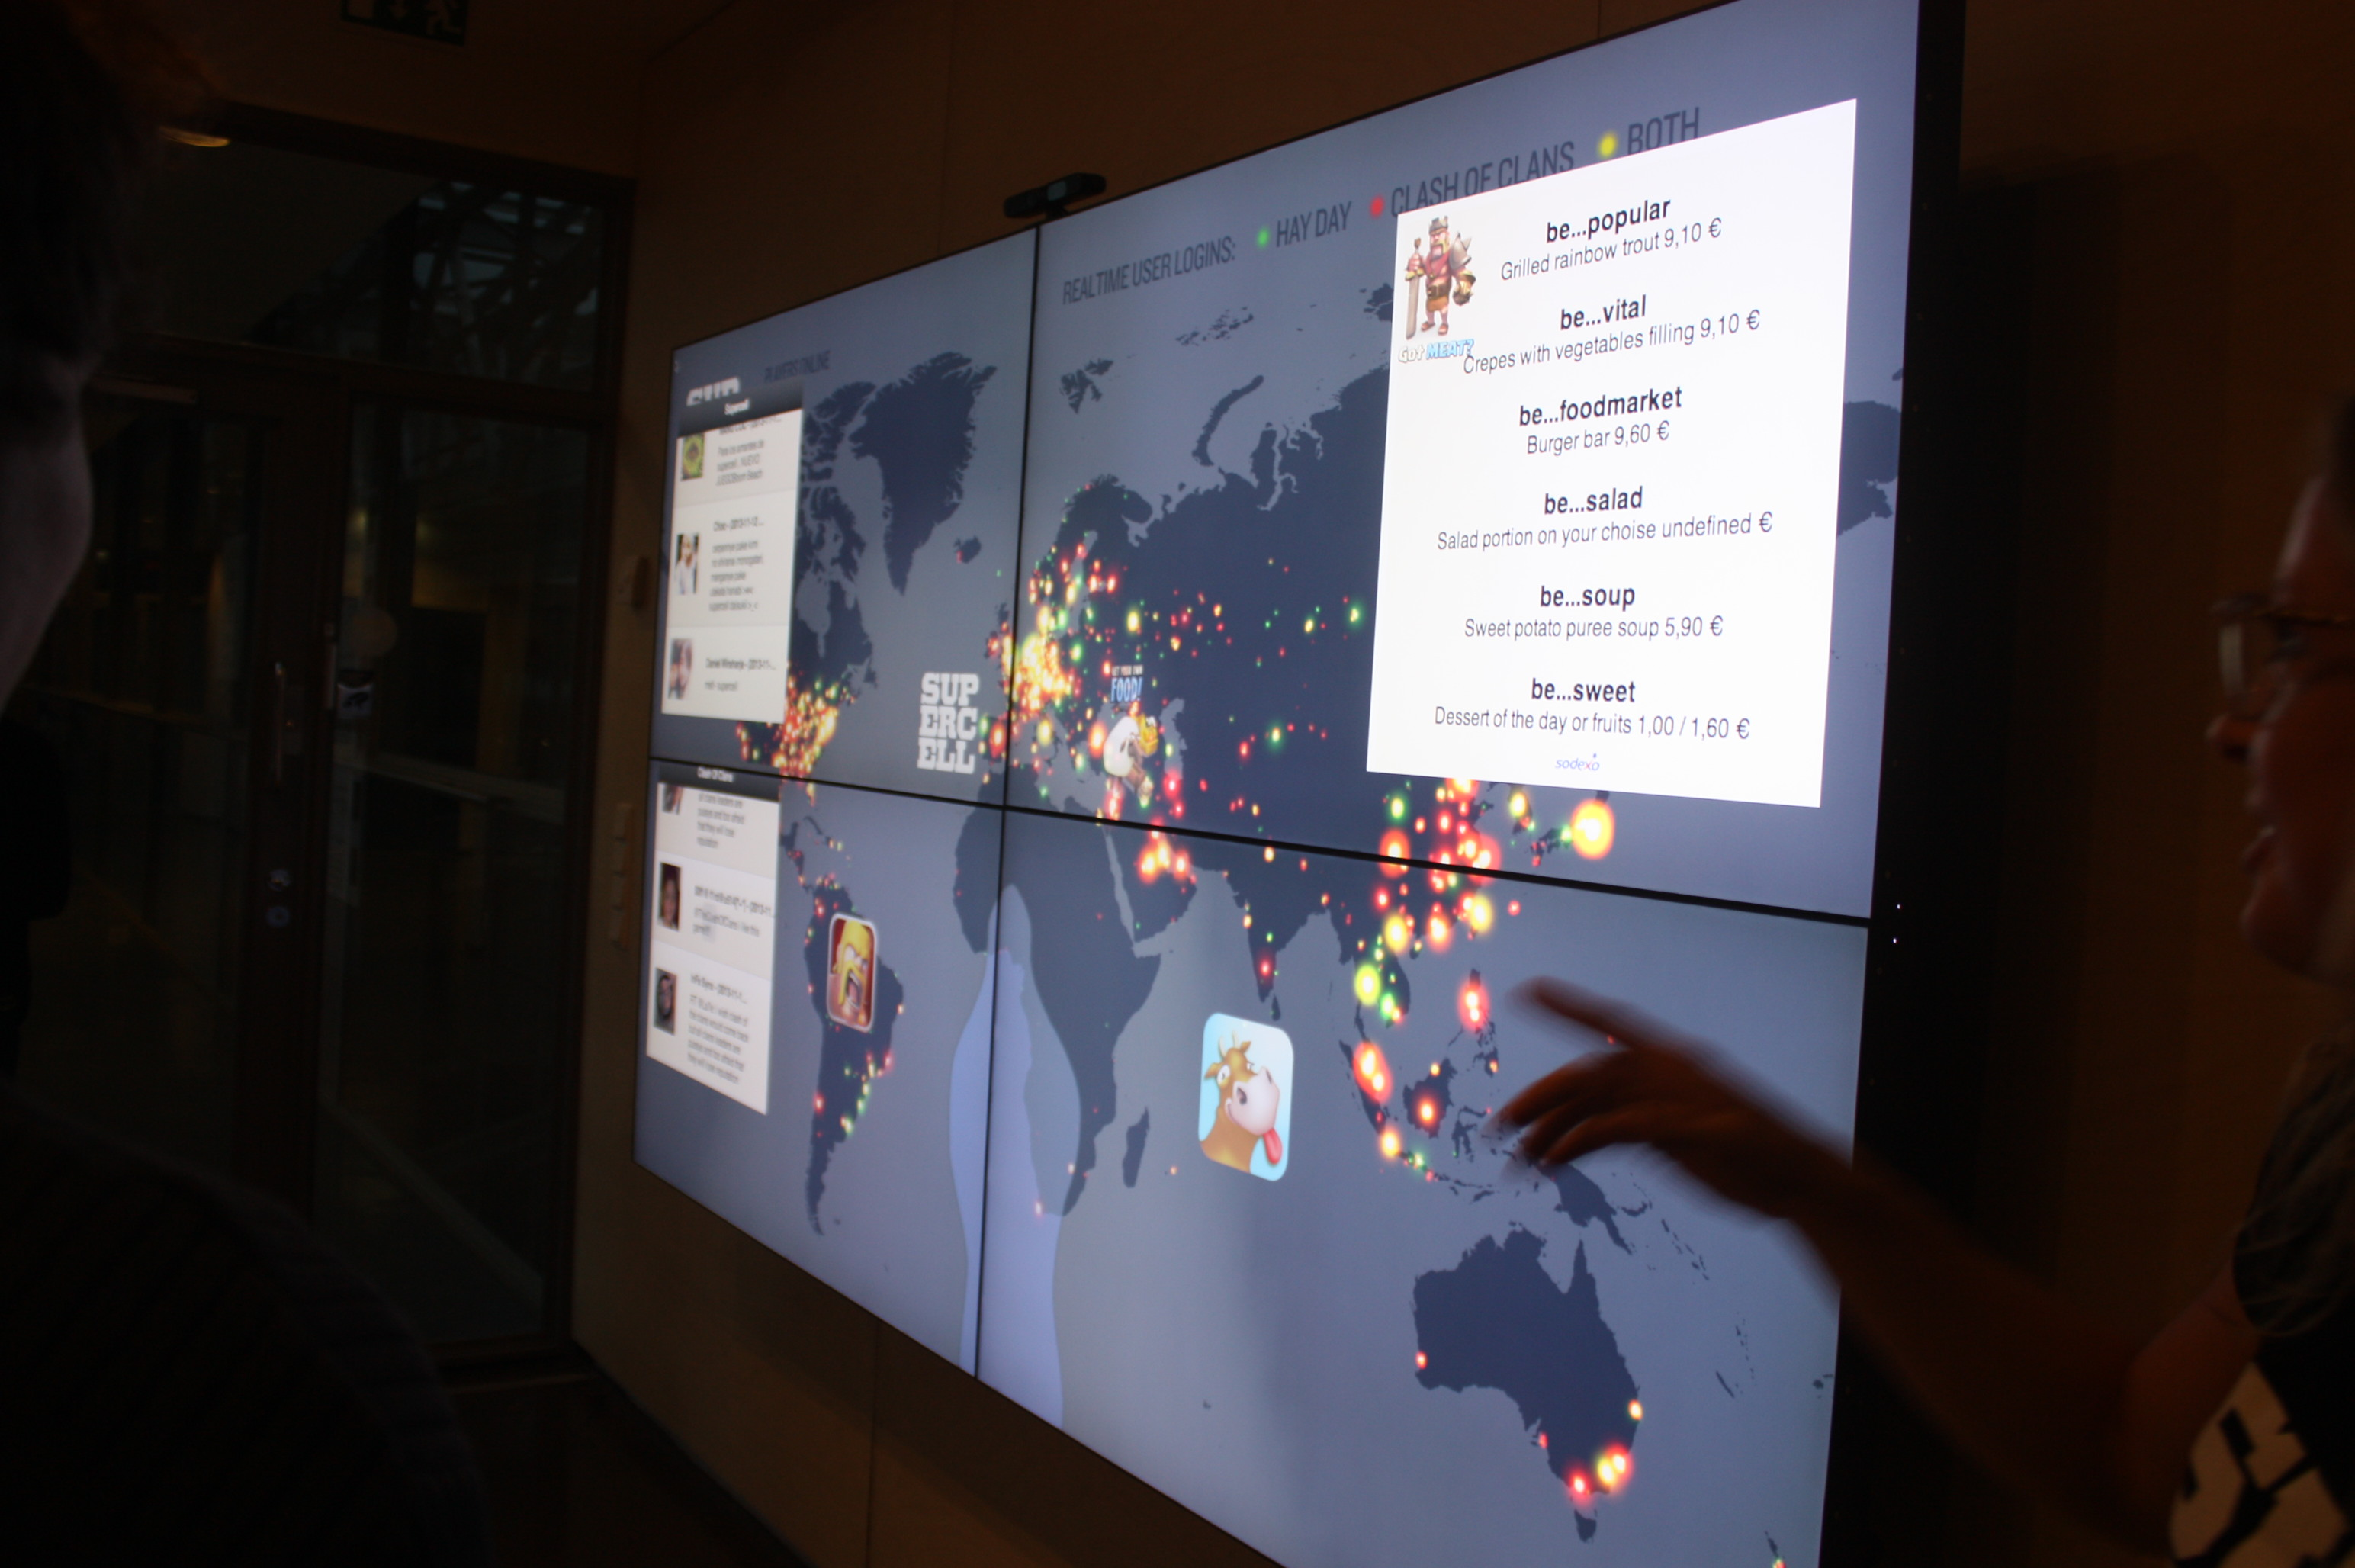 Supercell's entrance has a display that shows player activity around the world.